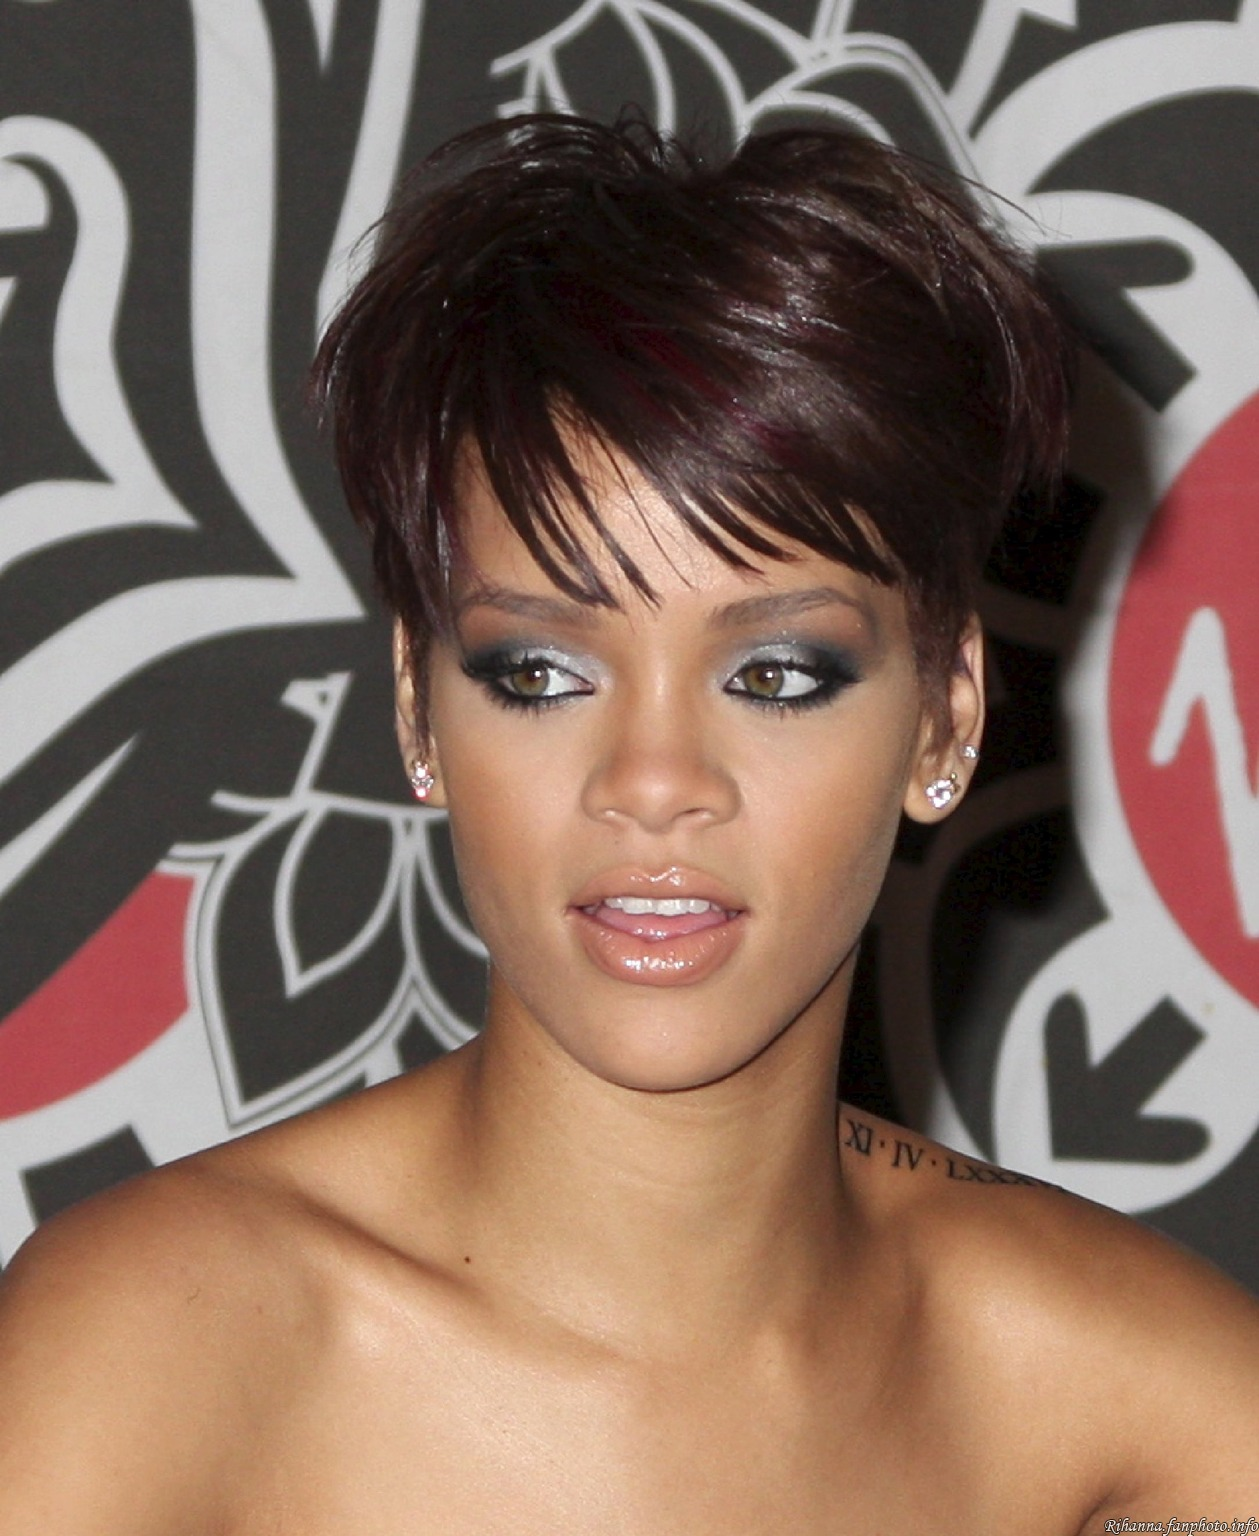 Rihanna Haircut Hairstyle Ideas: Rihanna Hairstyle Trends